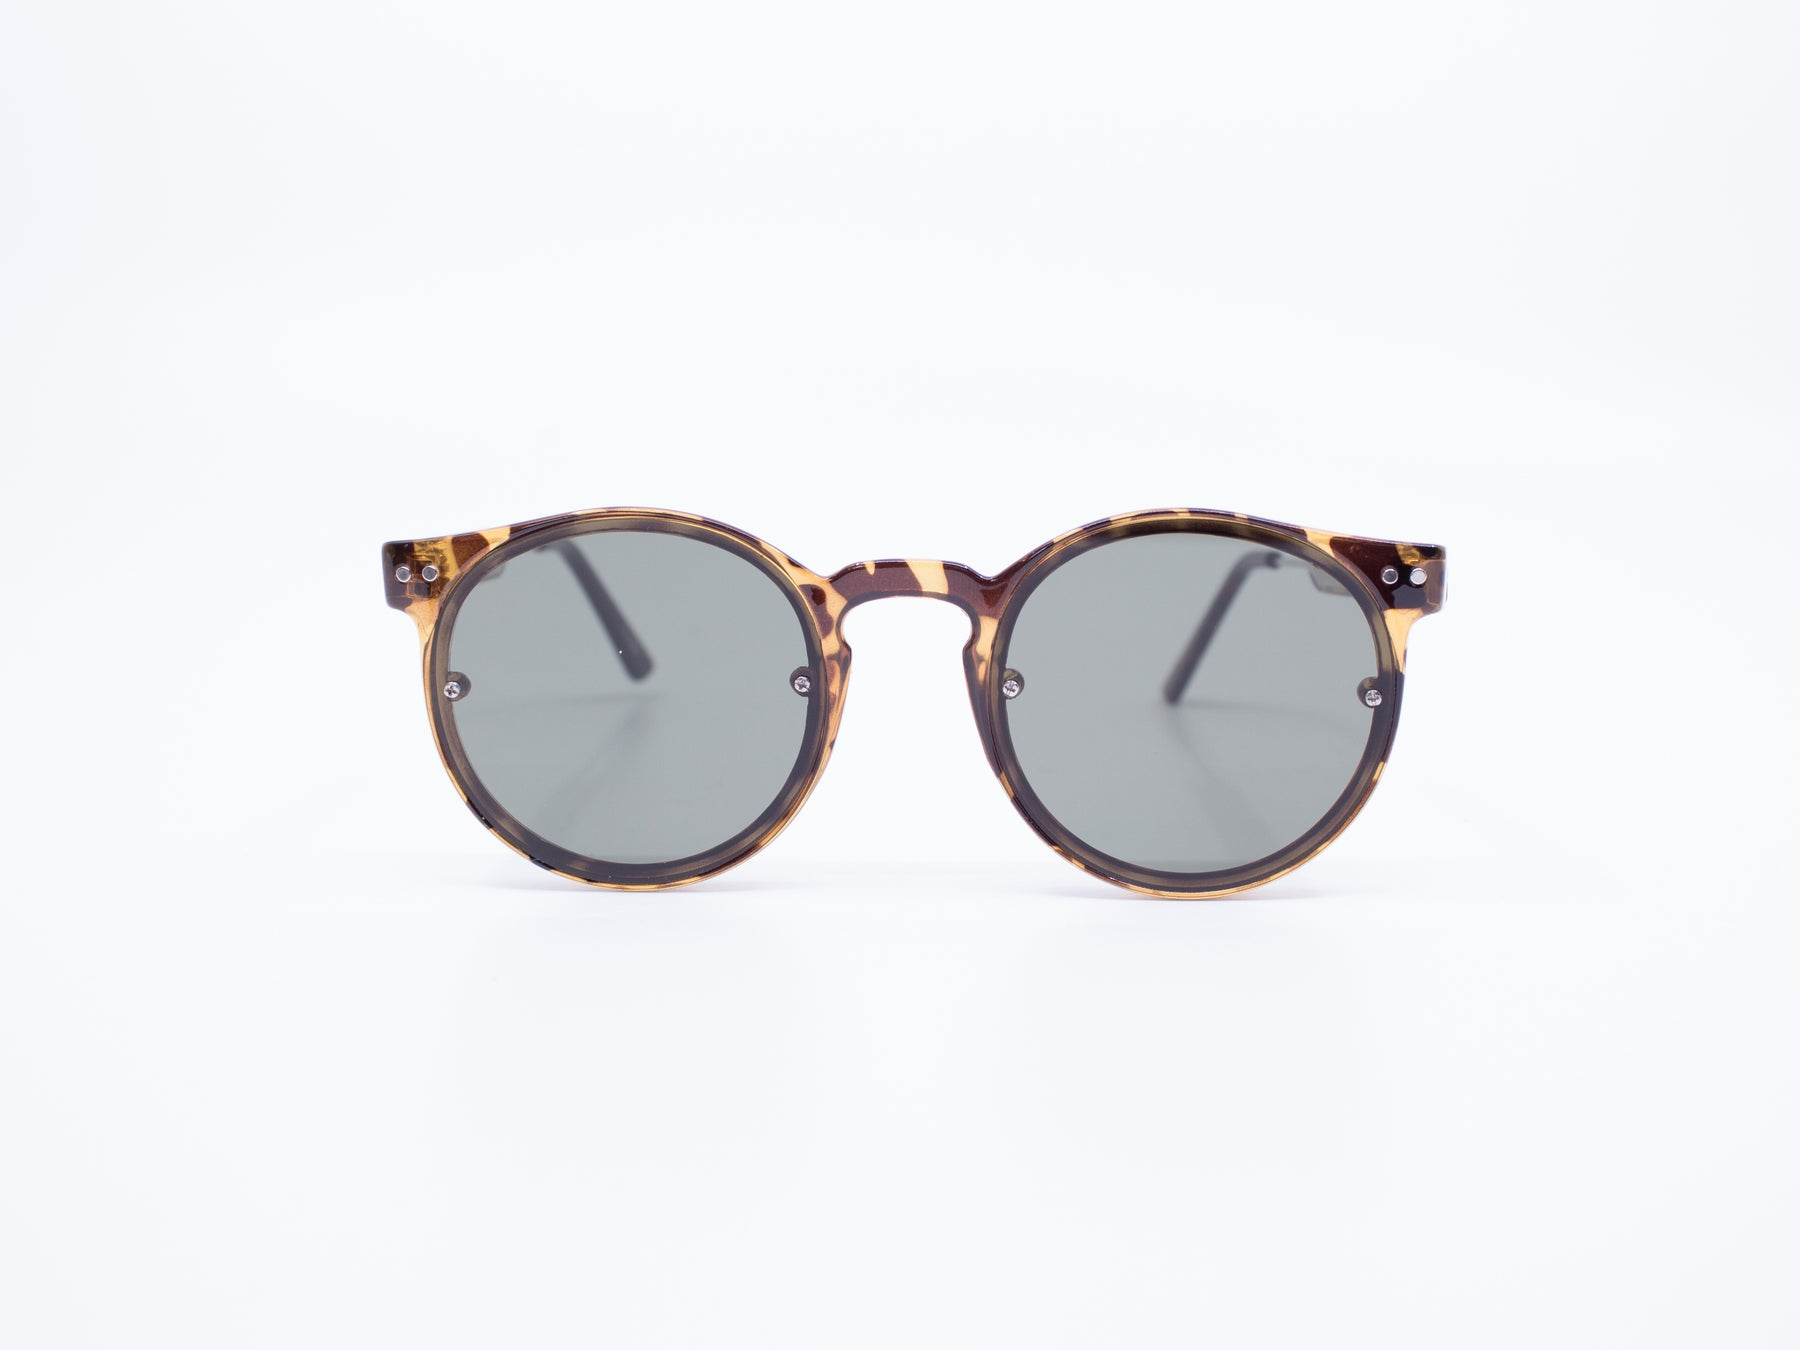 Spitfire Post Punk Sunglasses in Tortoise/Black